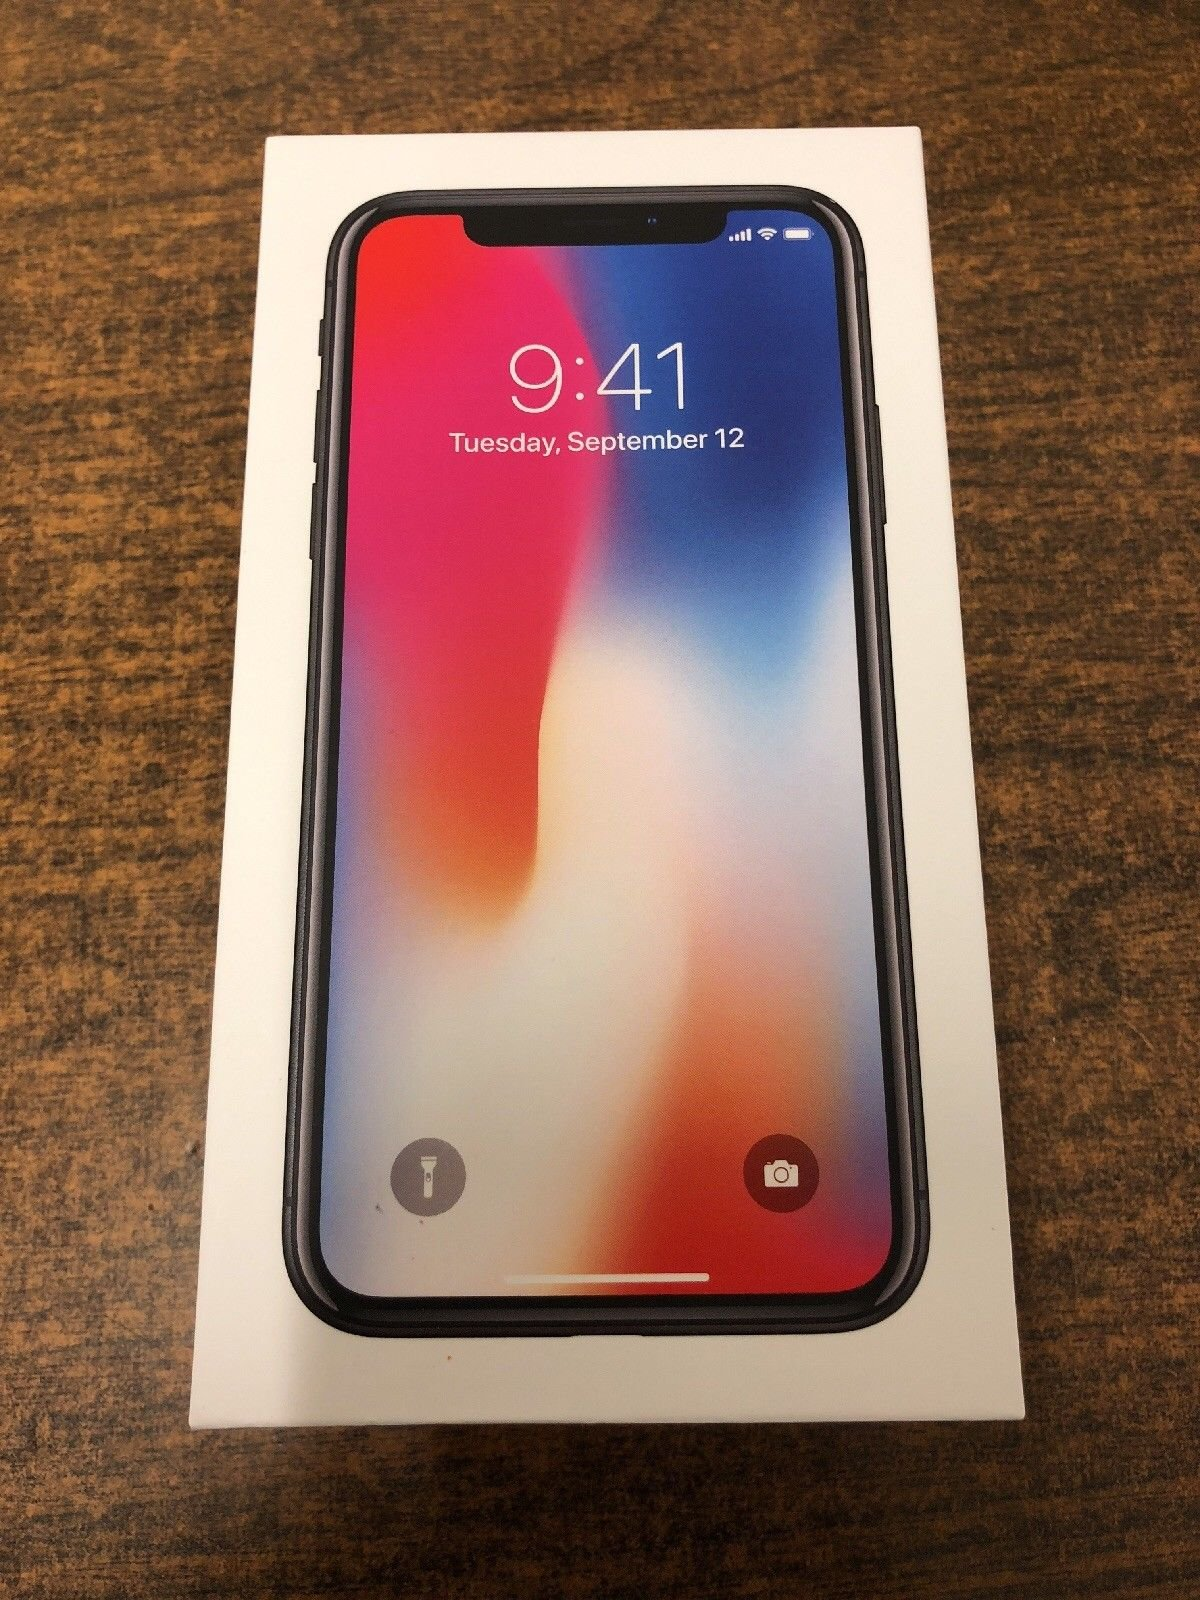 APPLE IPHONE X 256GB BRAND NEW UNLOCKED SMARTPHONE for sale in 23 Plan View Kingston St Andrew